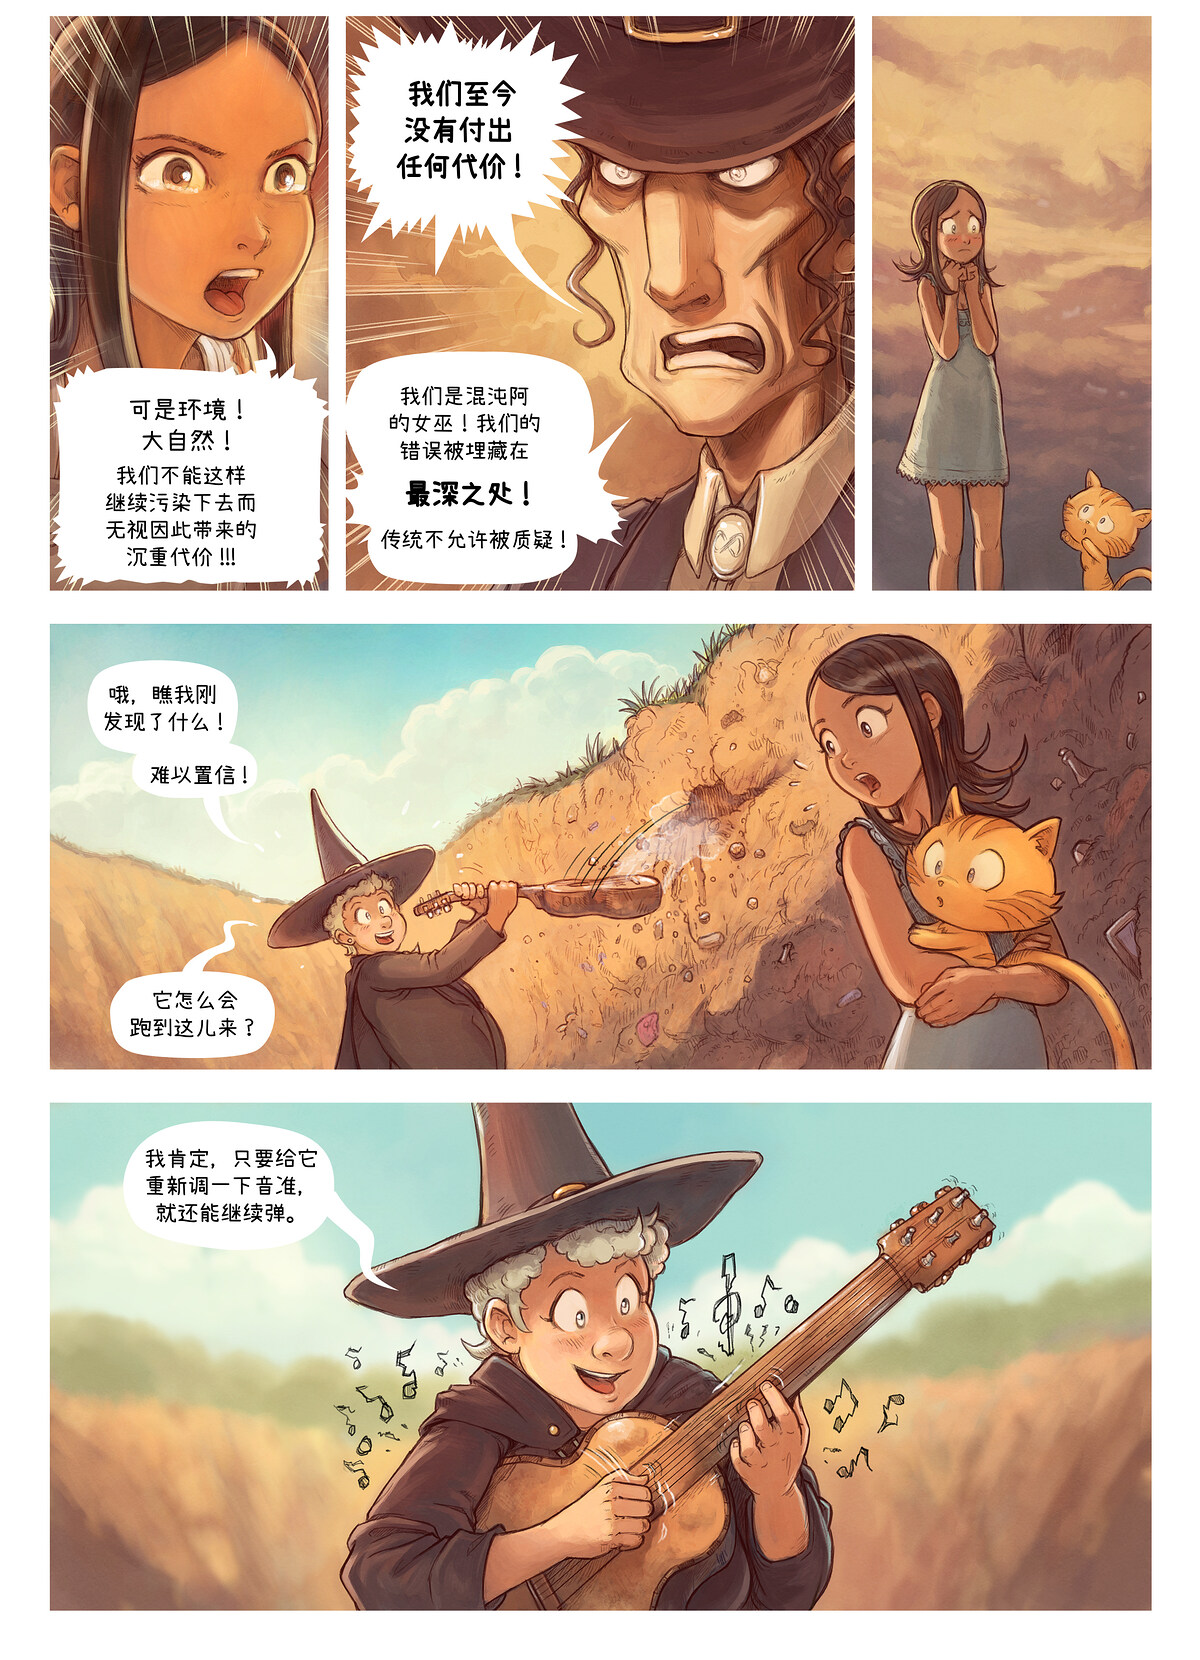 A webcomic page of Pepper&Carrot, 漫画全集 19 [cn], 页面 6